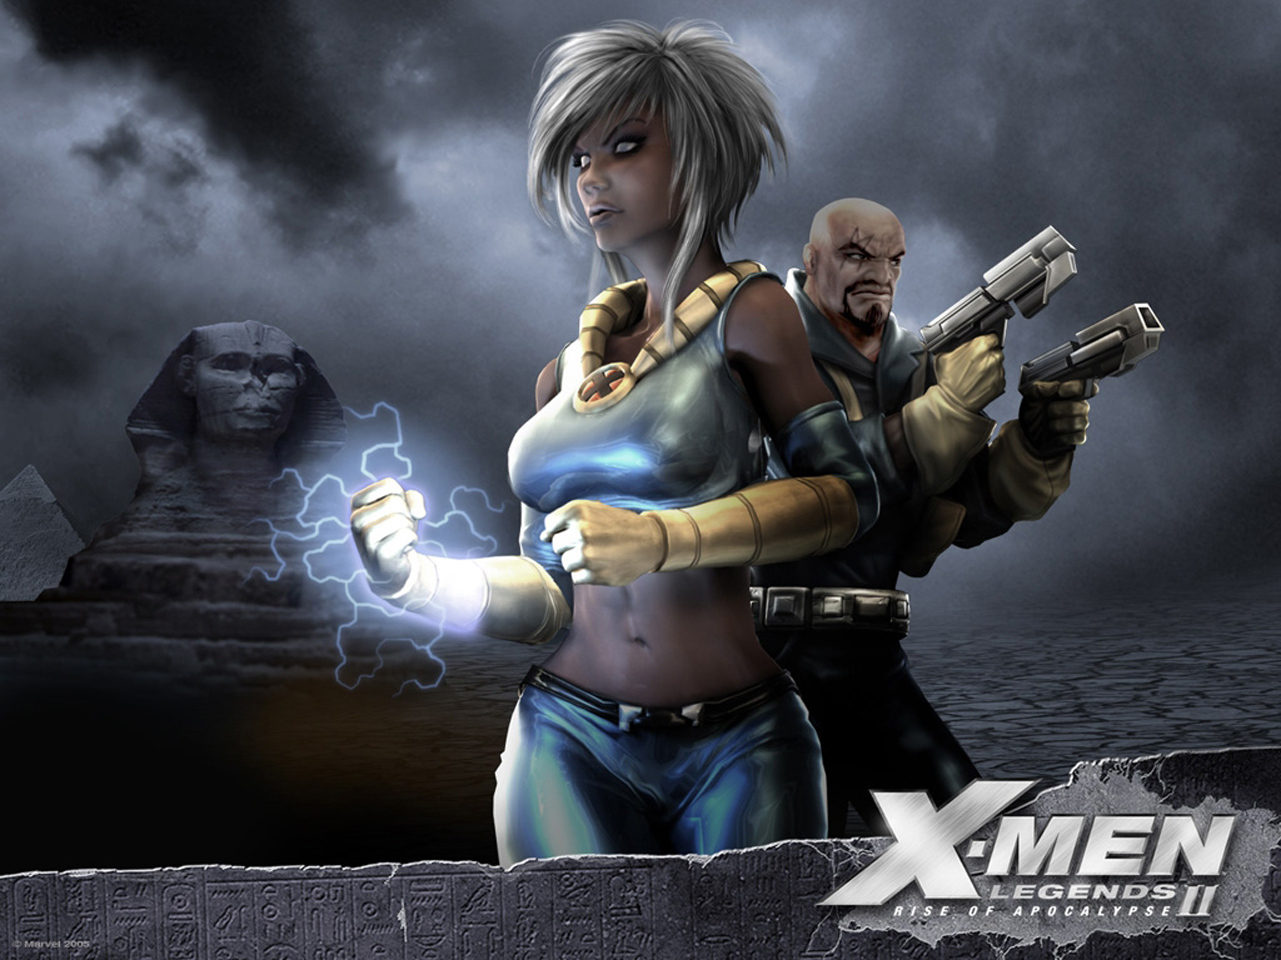 X-Men cartoon HD Wallpaper